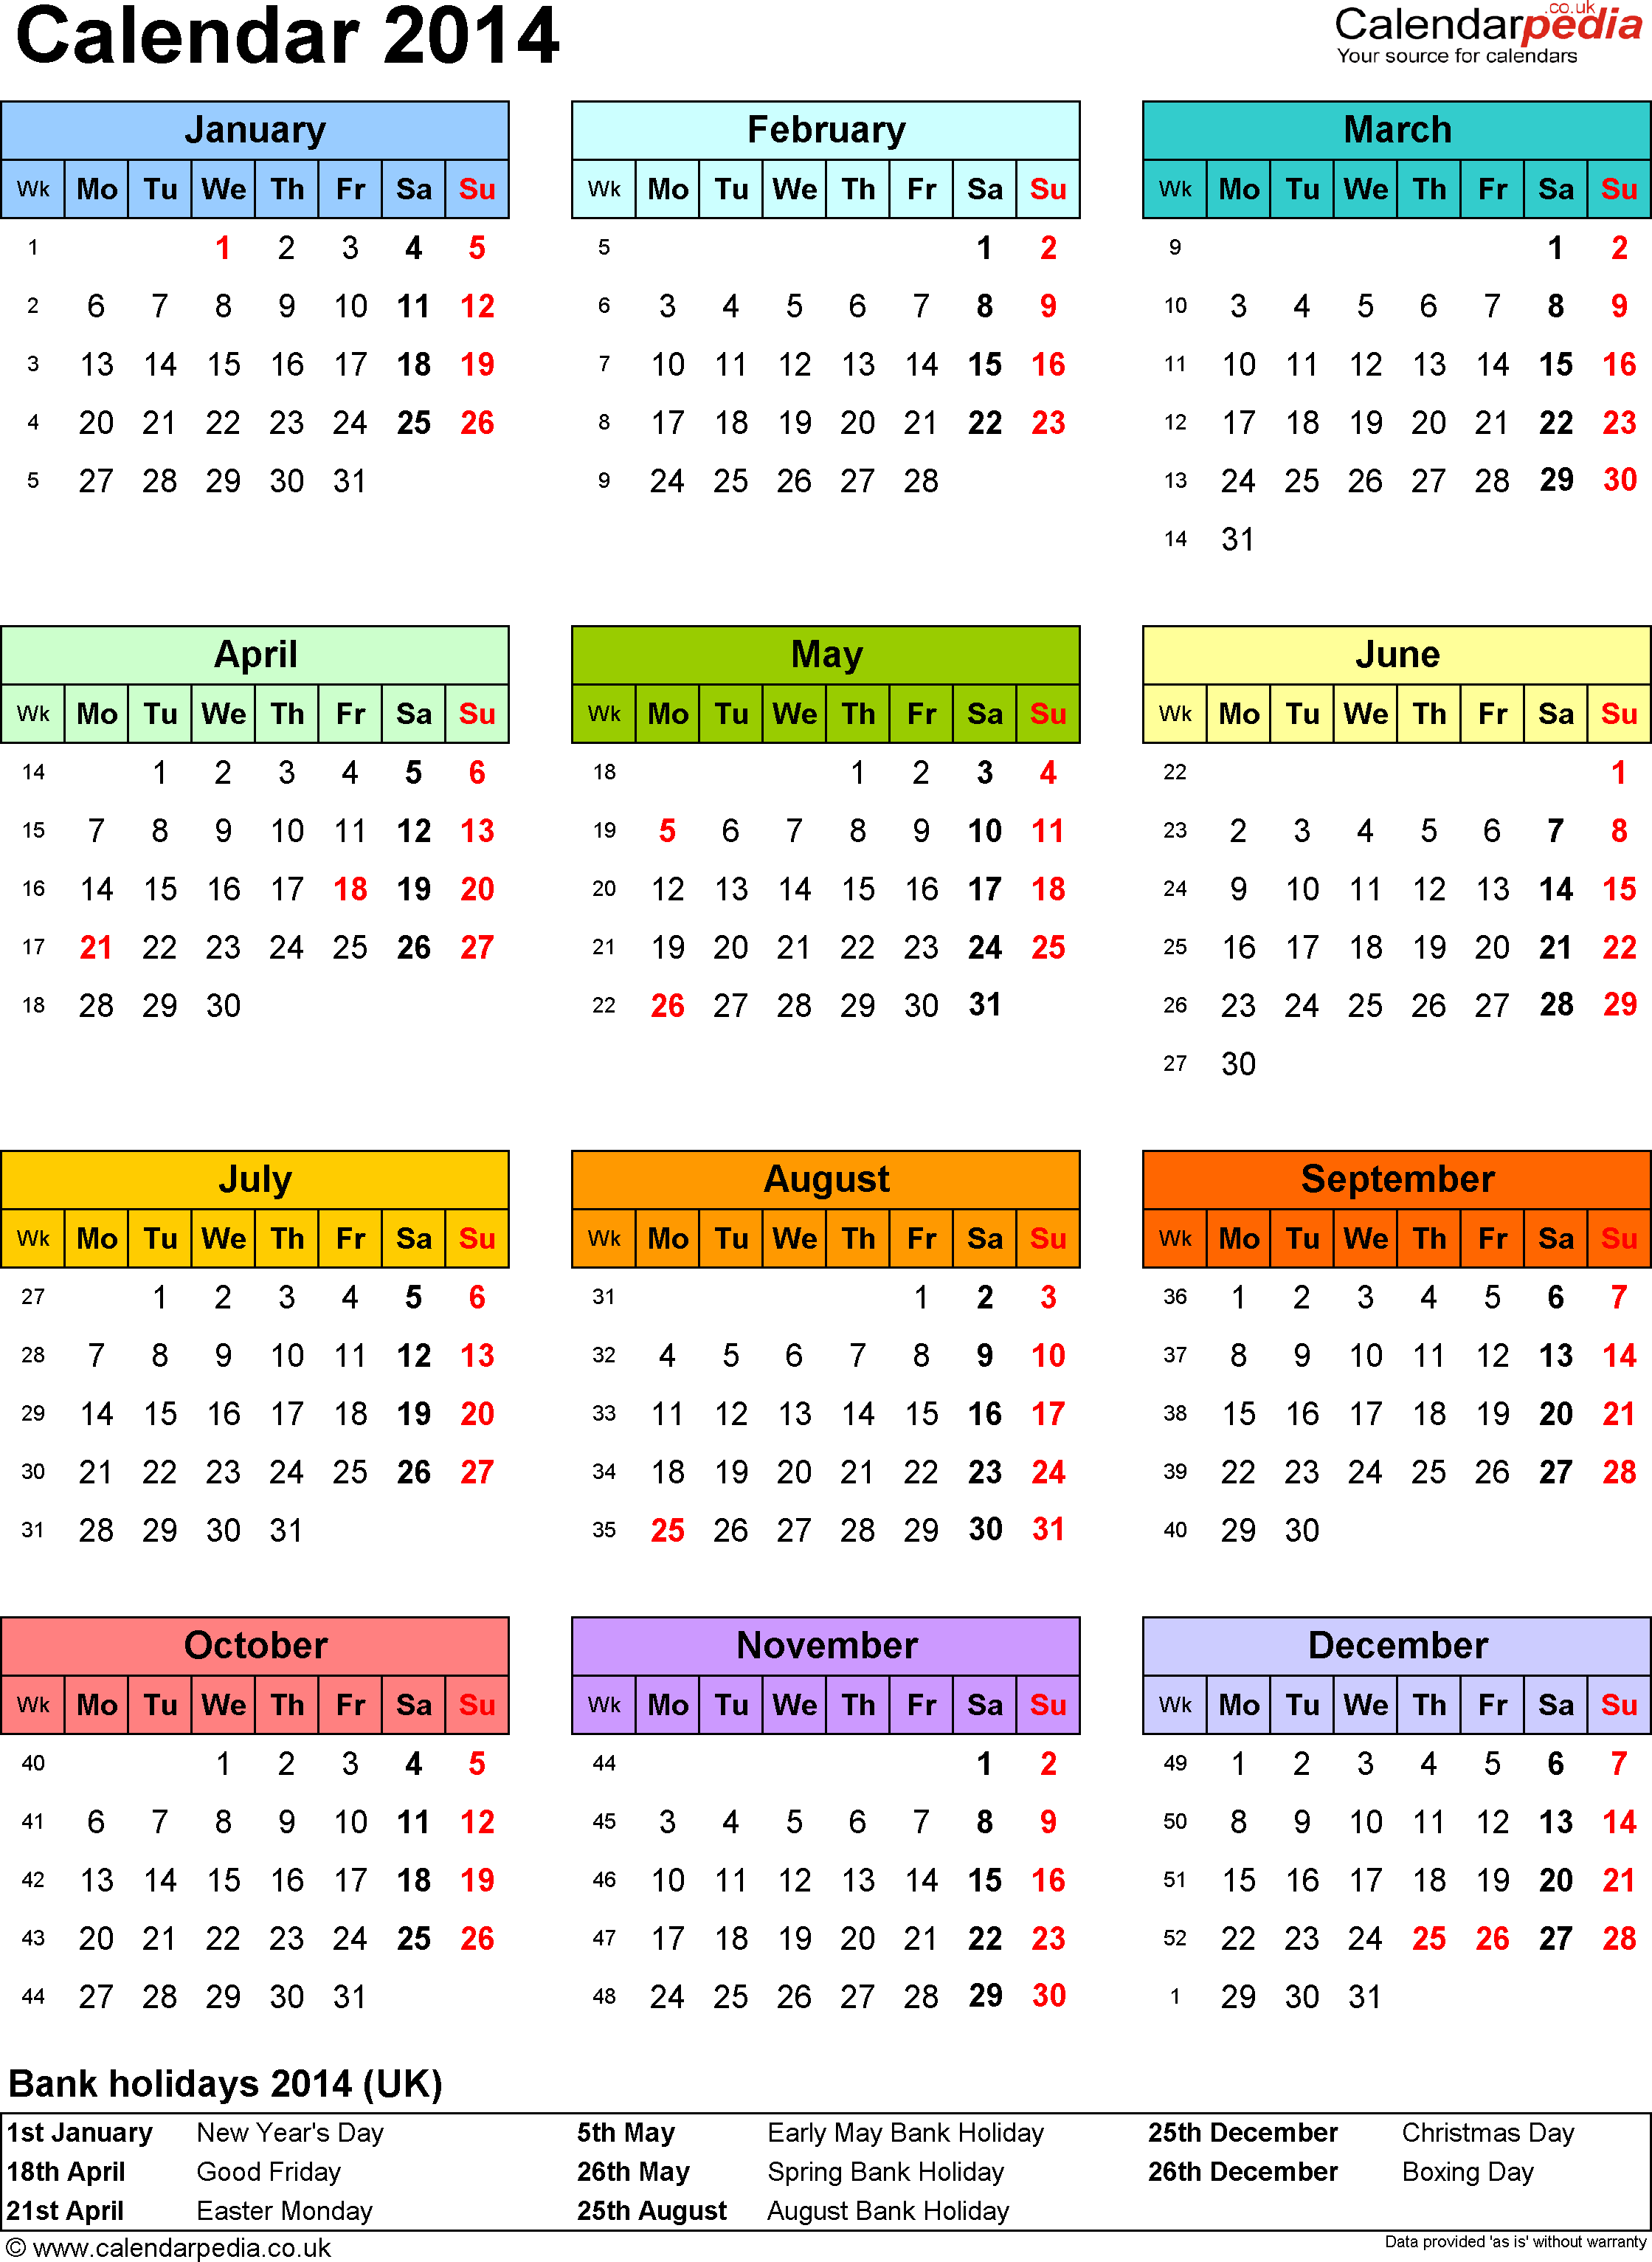 Download Template 13: Yearly calendar 2014 as Word template, portrait orientation, year overview in colour, one A4 page